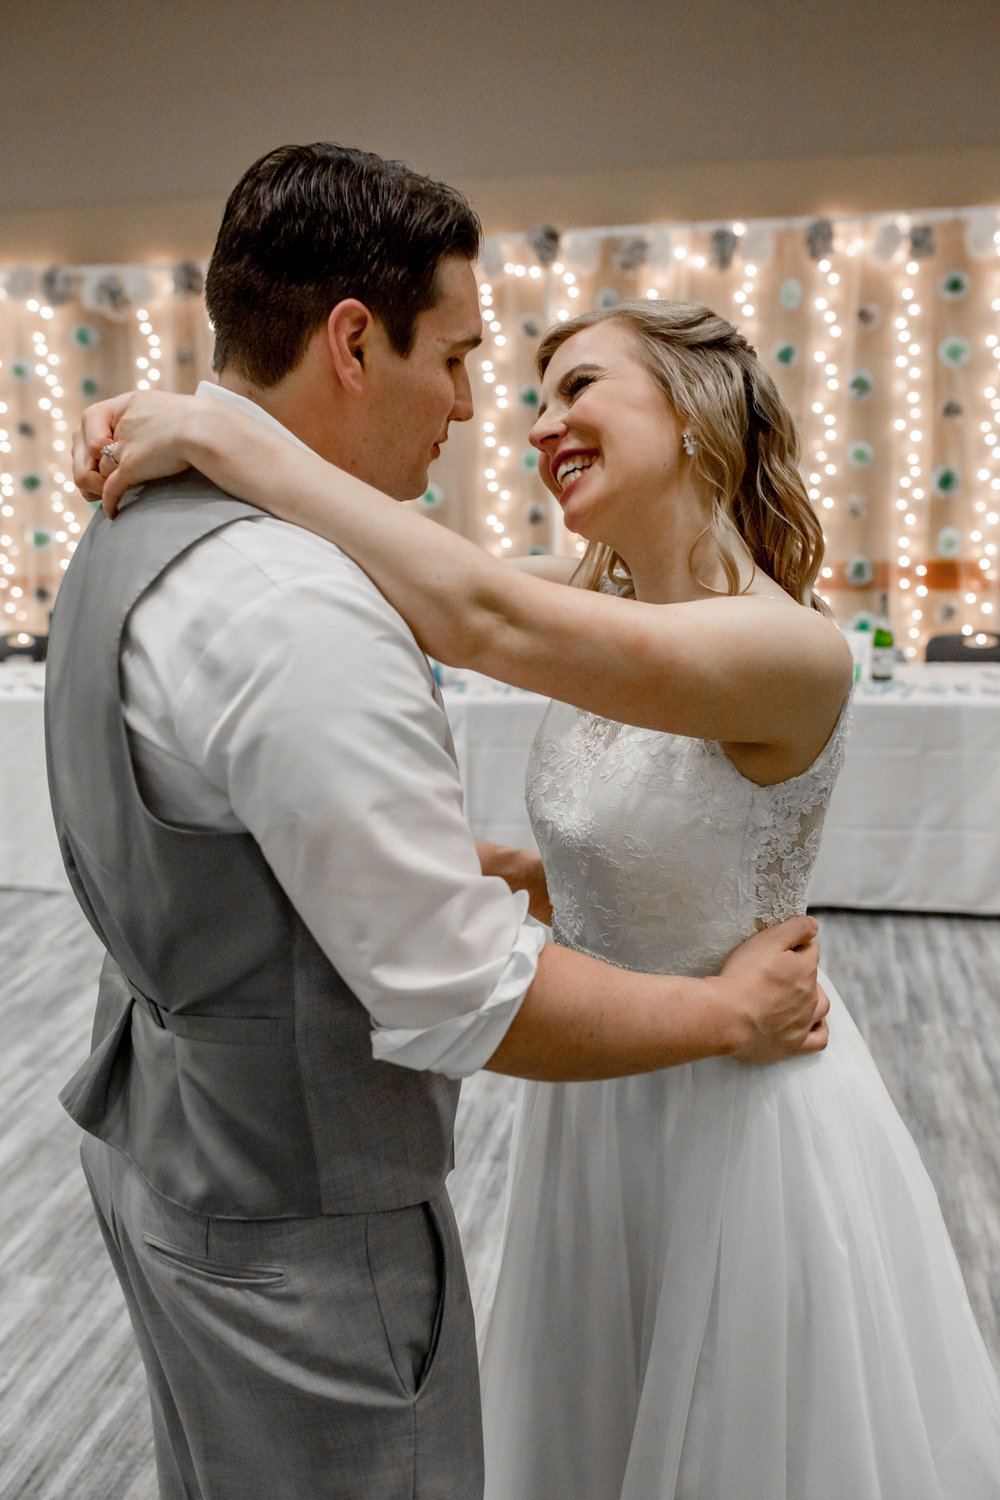 Haley & Stephen-370.JPG